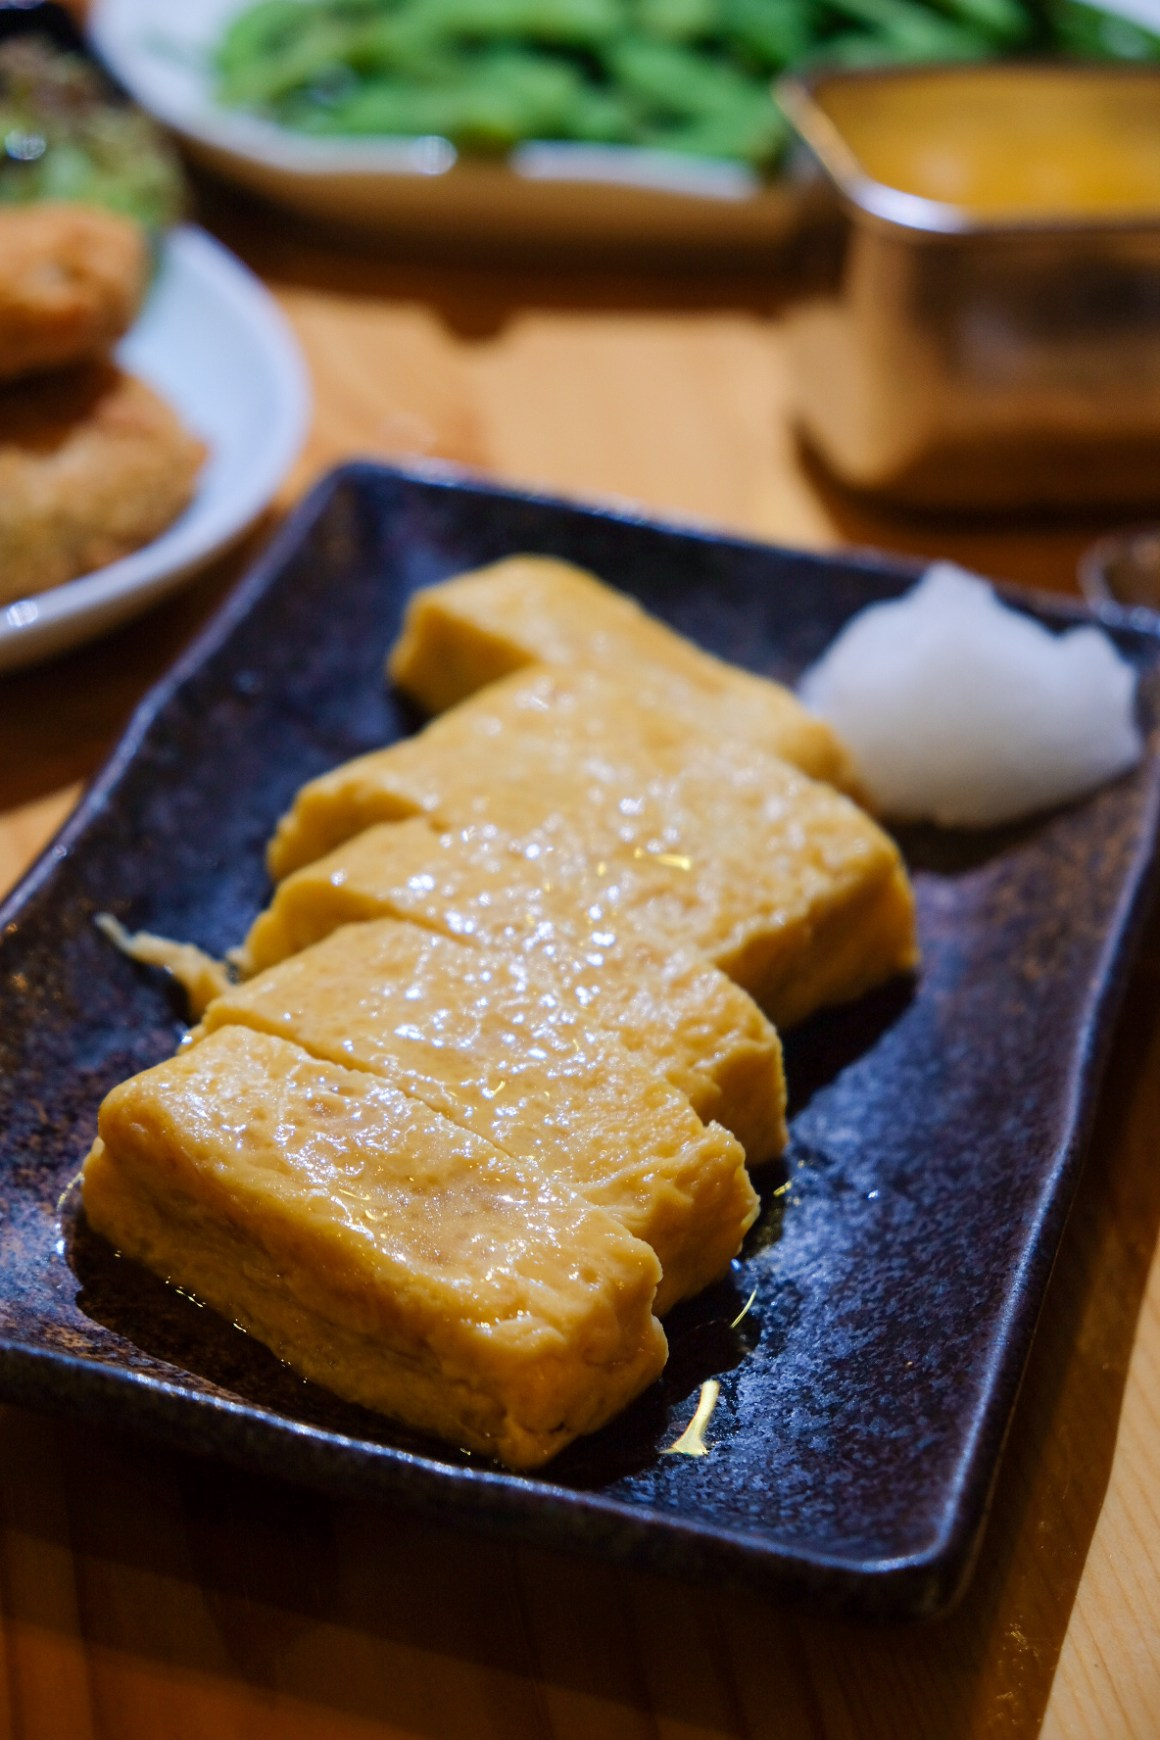 New Autumn Seasonal Menu at Kushikatsu Tanaka - Dashimaki Tamago ($5)